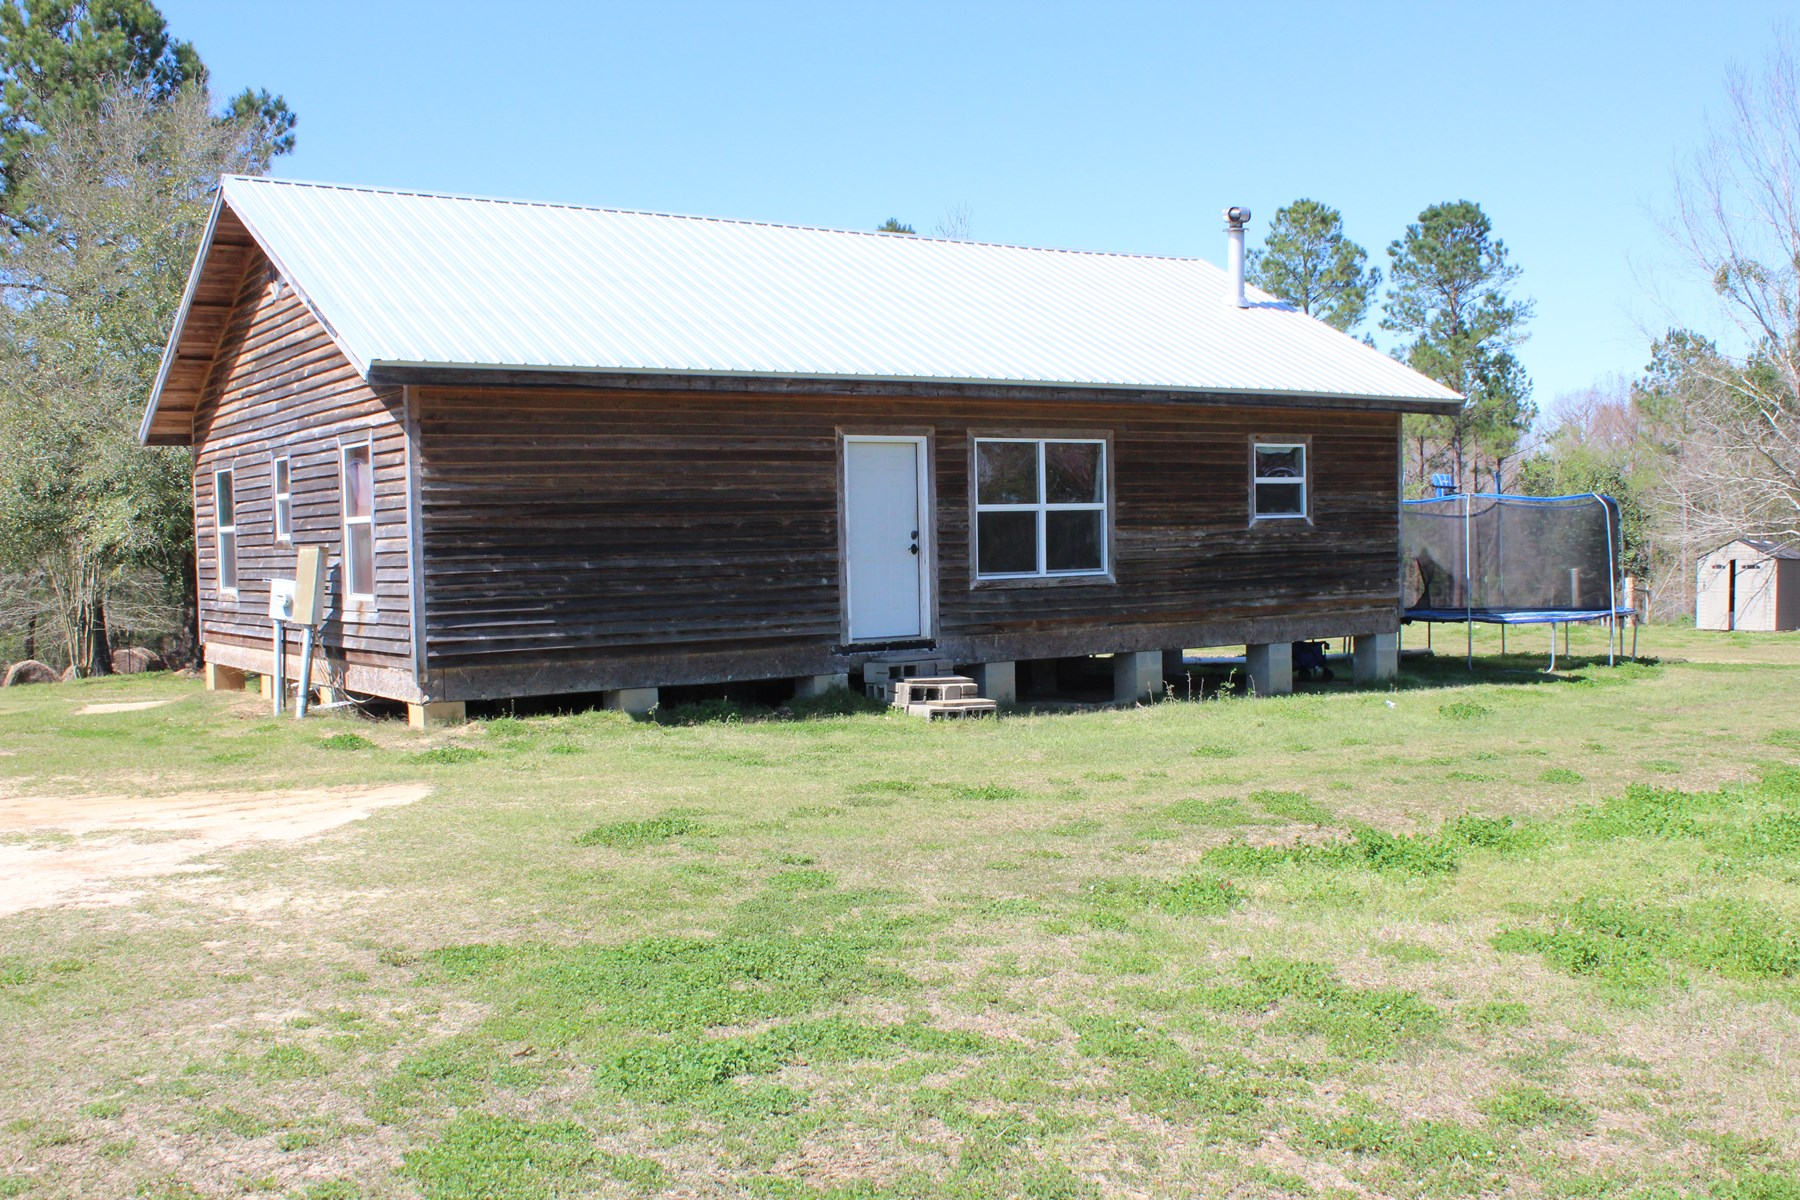 Cabin with land for sale near Dothan, Al